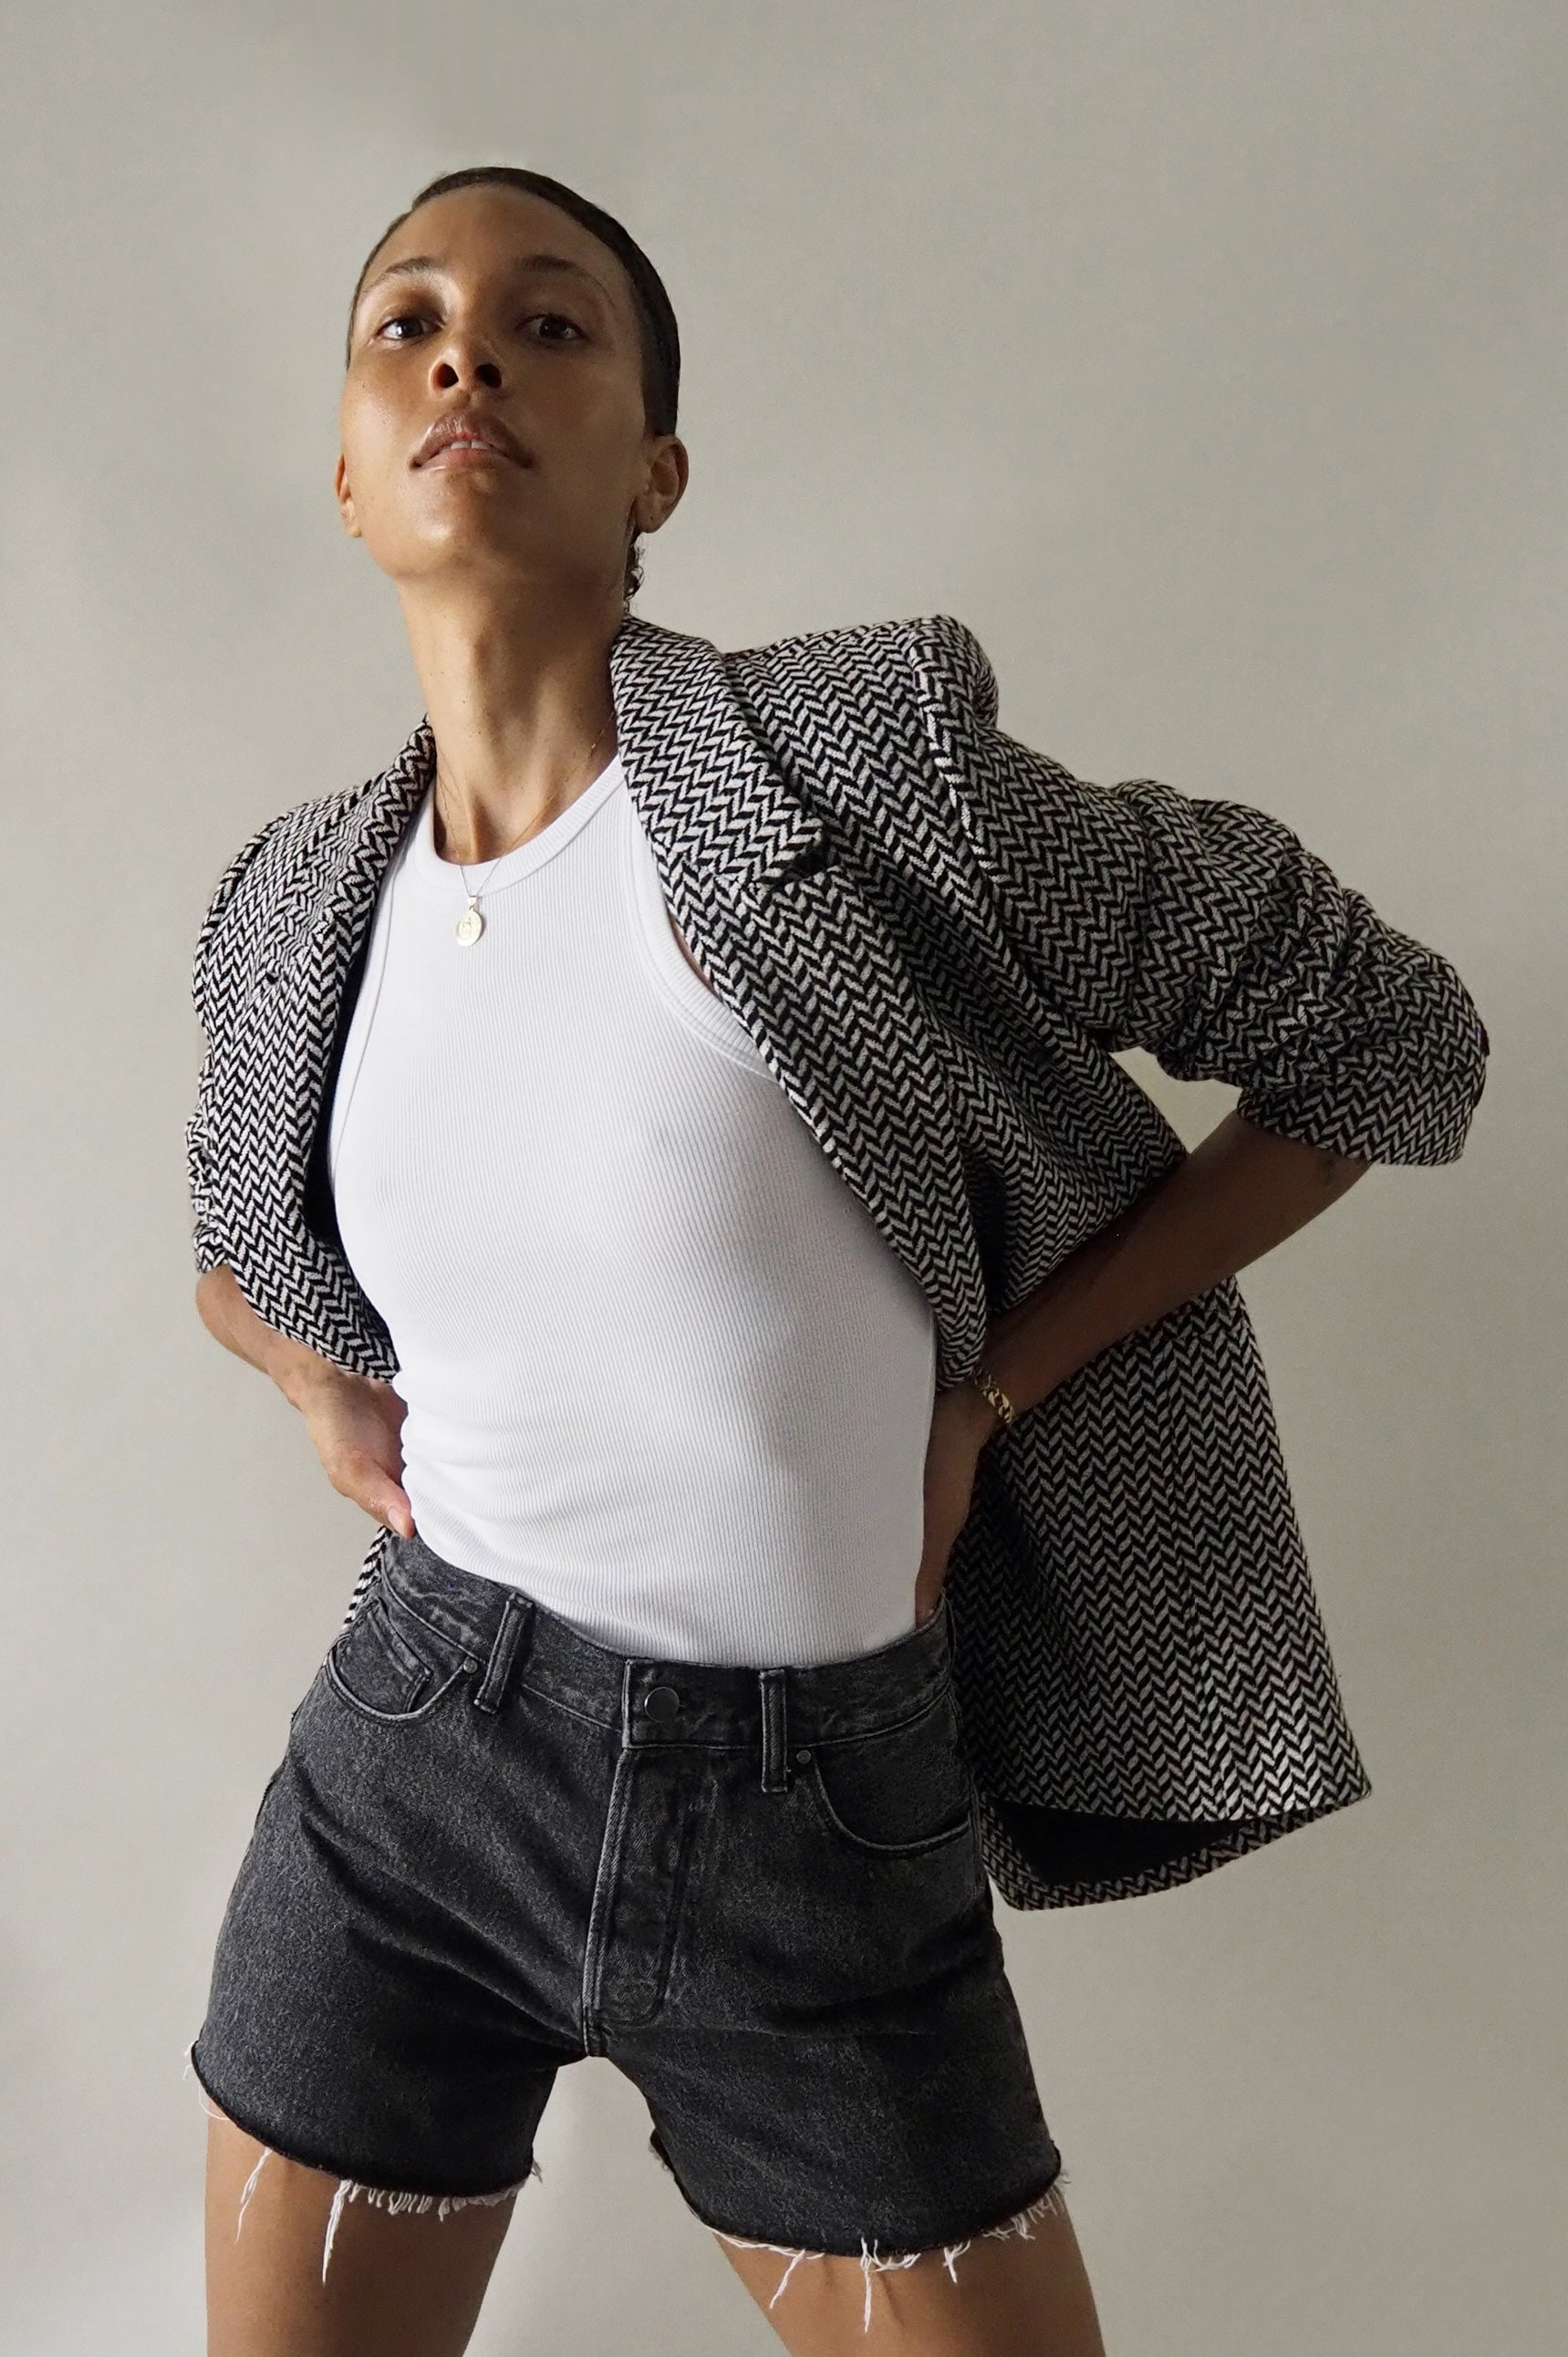 "<p><a href=""https://aninebing.myshopify.com/products/fishbone-blazer-black-and-off-white"" title=""Fishbone Blazer - Black And Off White"">FISHBONE BLAZER</a> 